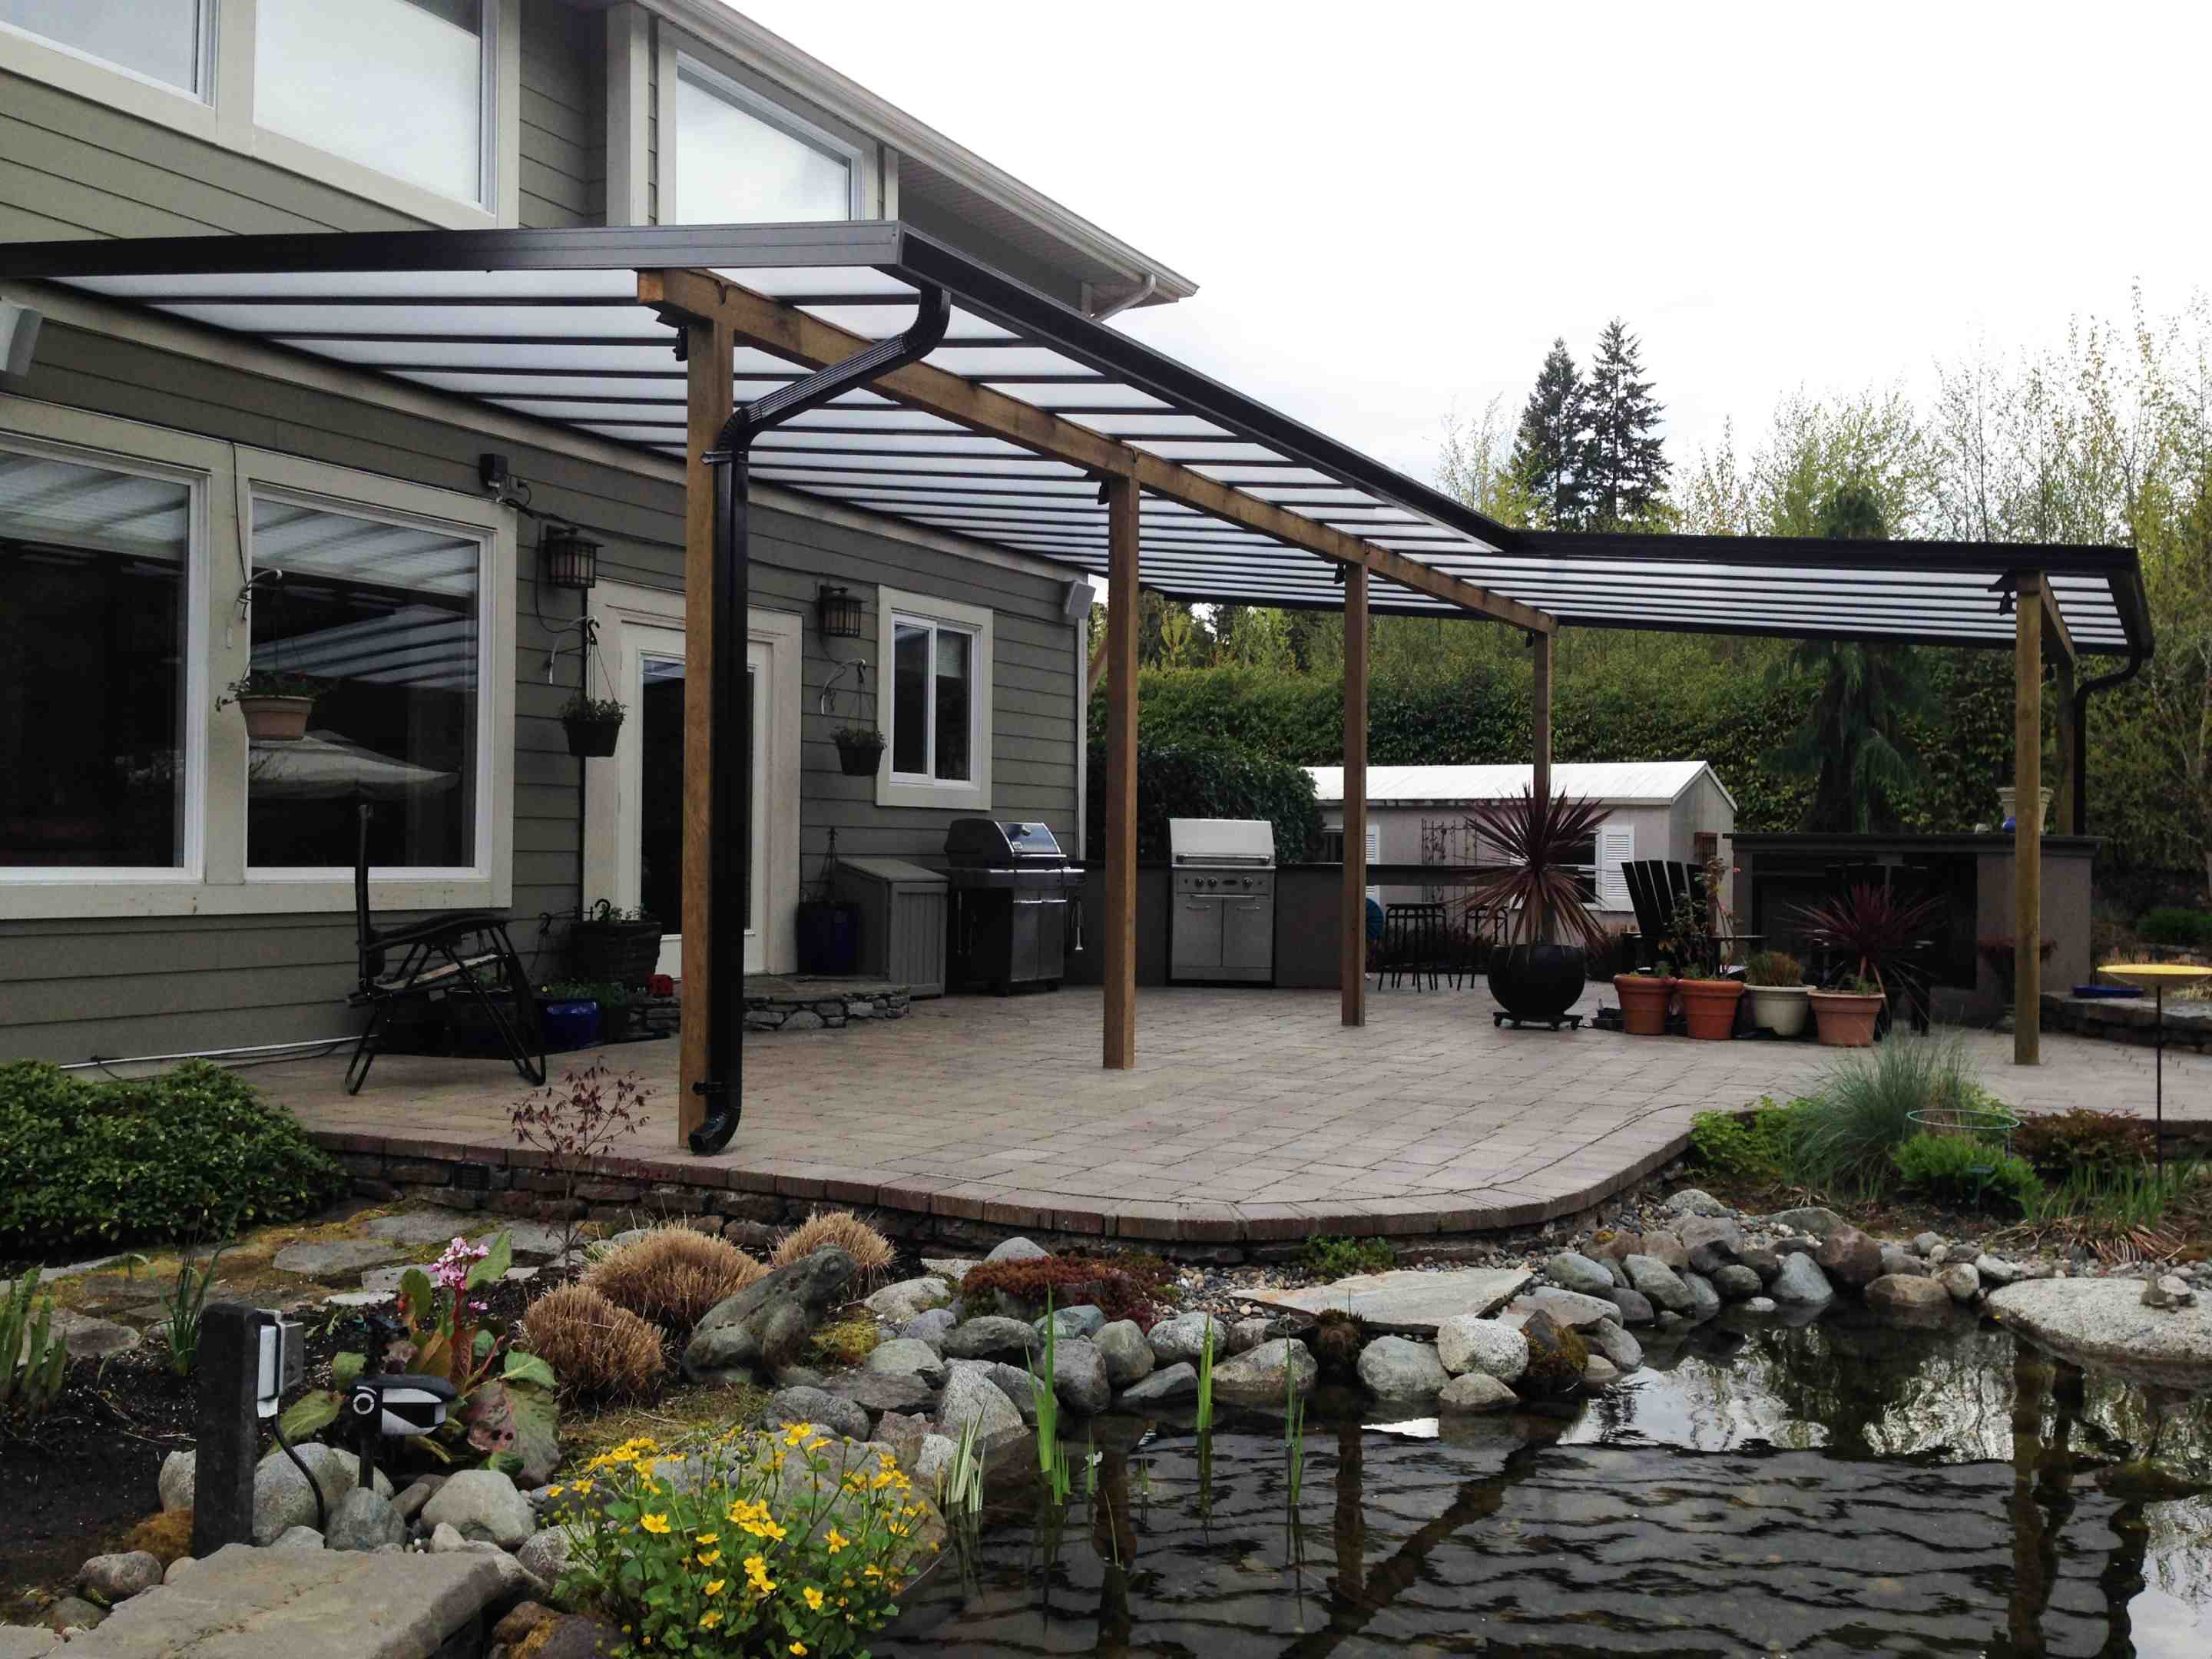 american patio covers, patio covers, deck coverings in buffalo, new york patio cover companies